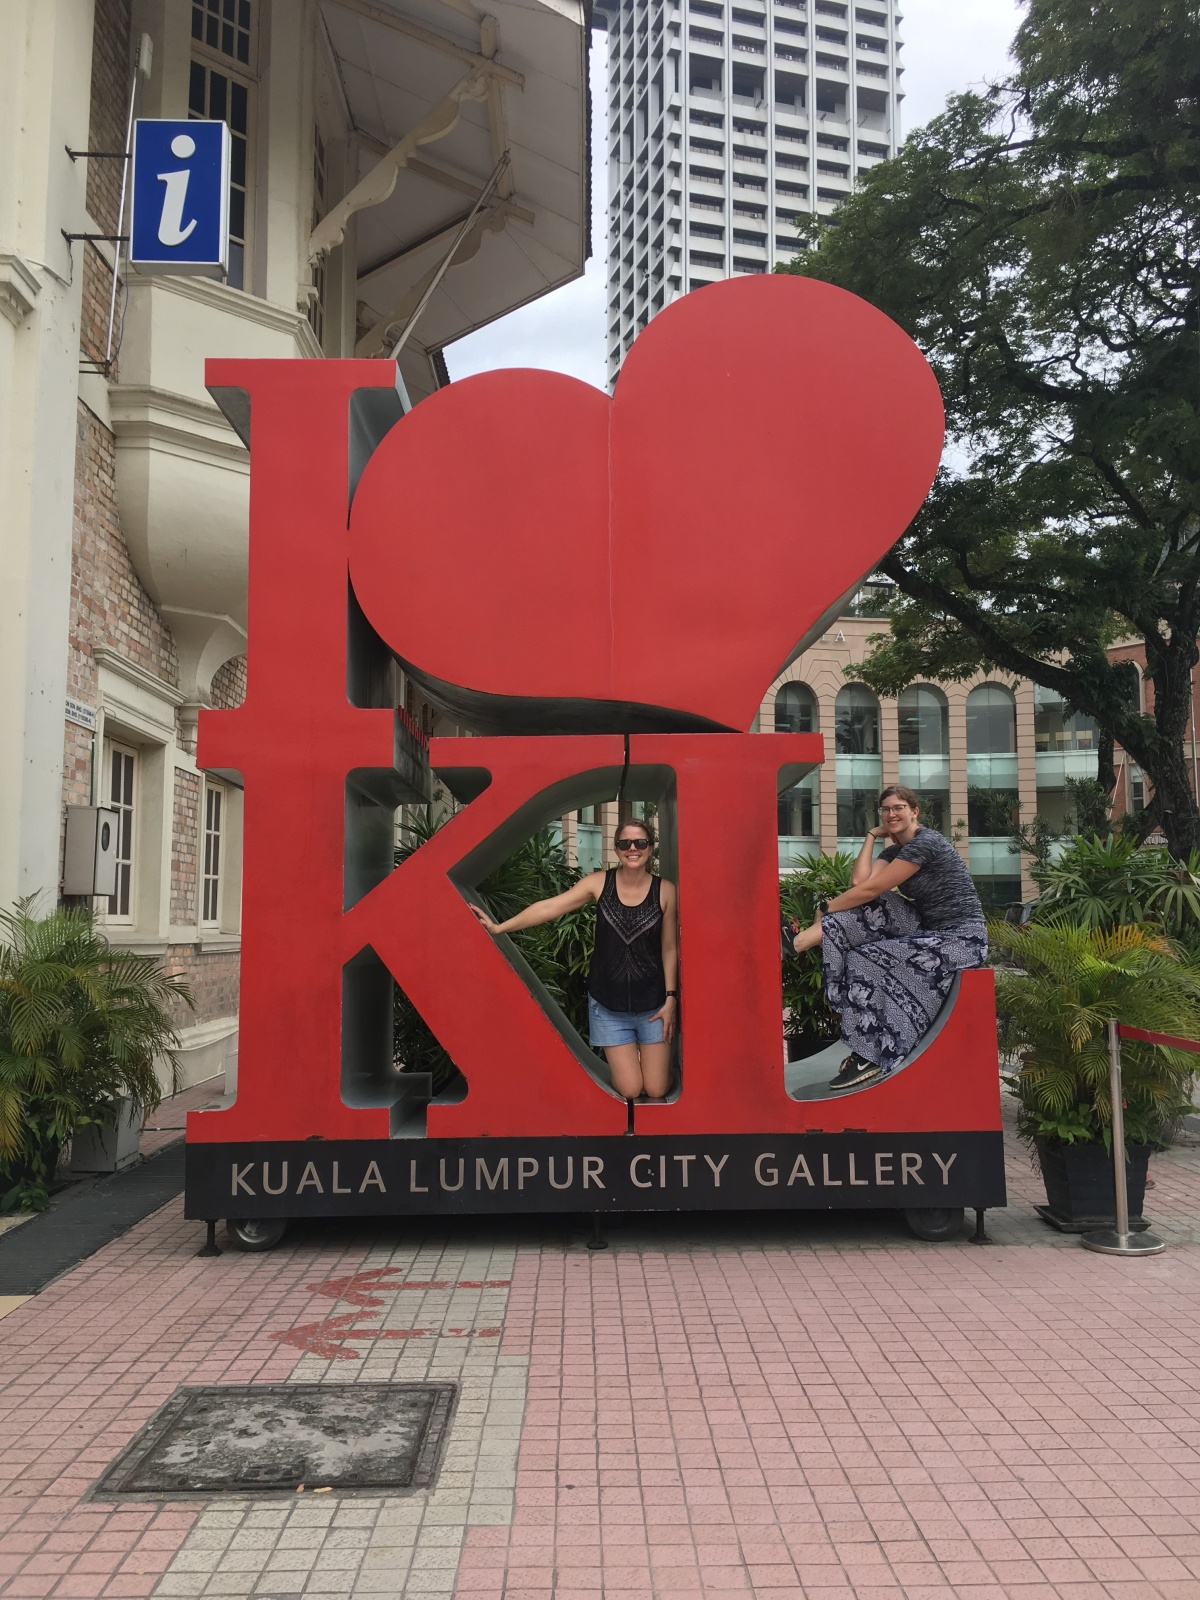 Where in the world in Kuala Lumpur?